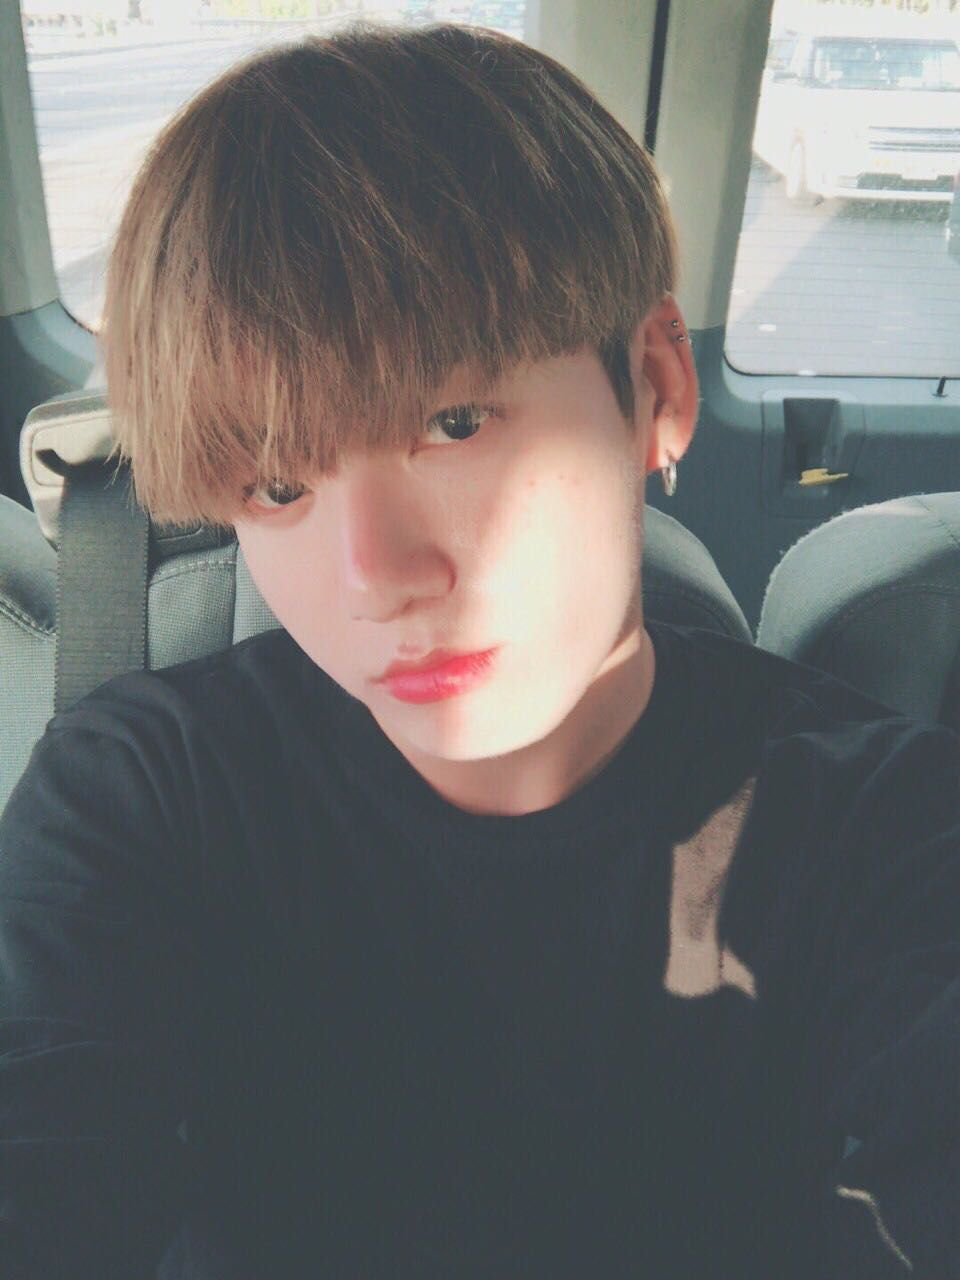 Jungkook's Little Sister | JJK - Eight - Wattpad